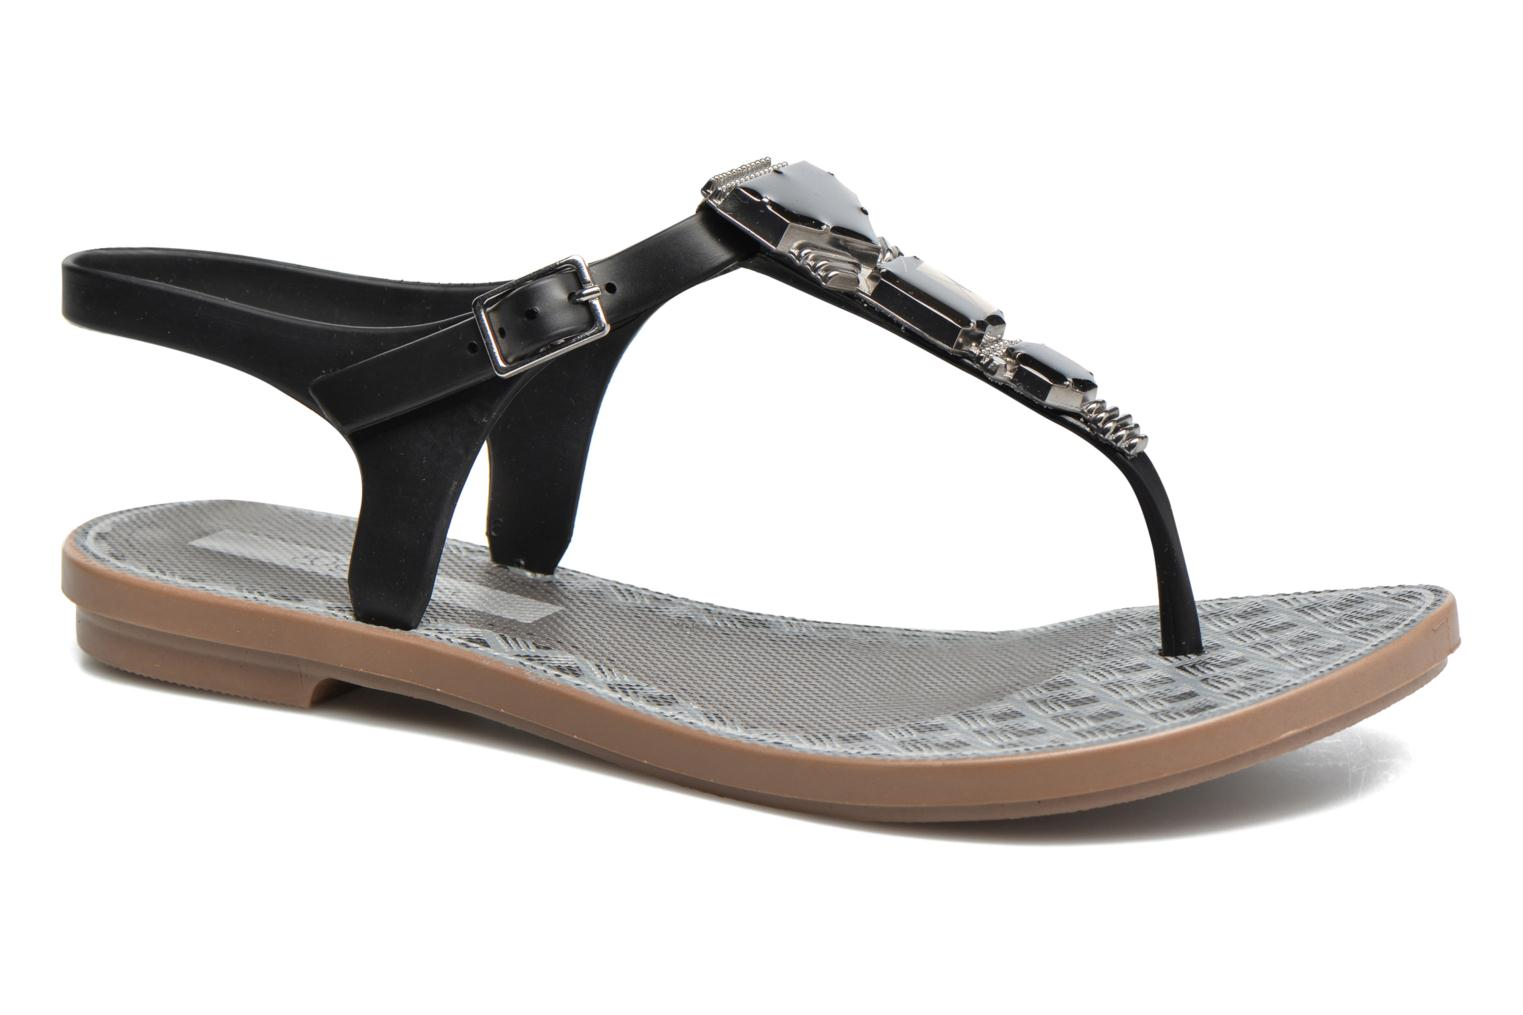 Jewel Sandal Brown/black